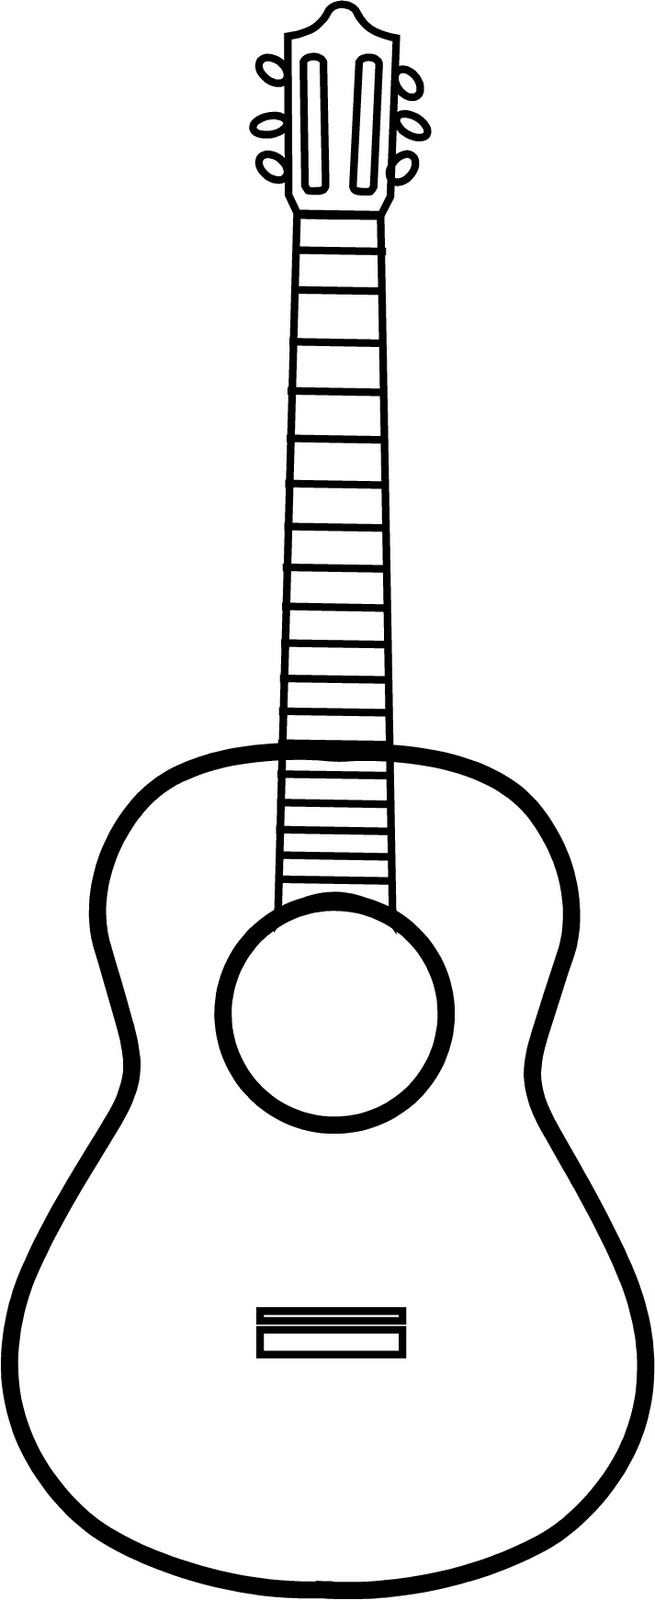 Guitar Outline.